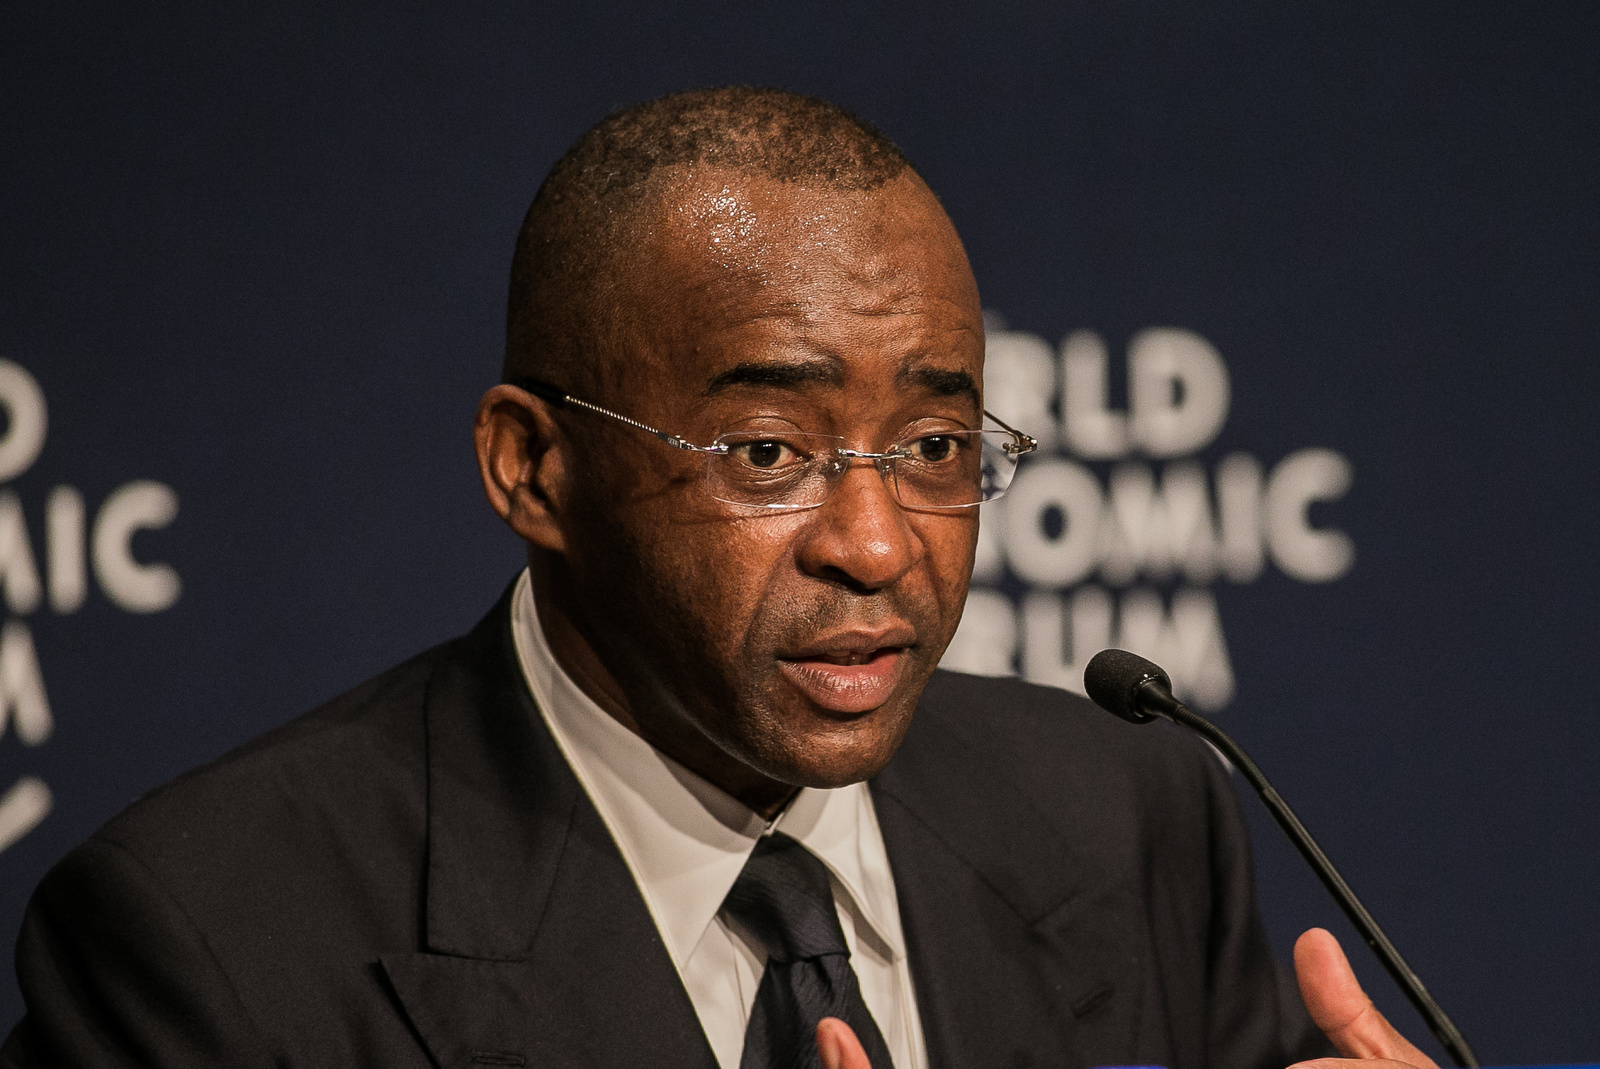 Top 20 Inspirational Strive Masiyiwa Quotes